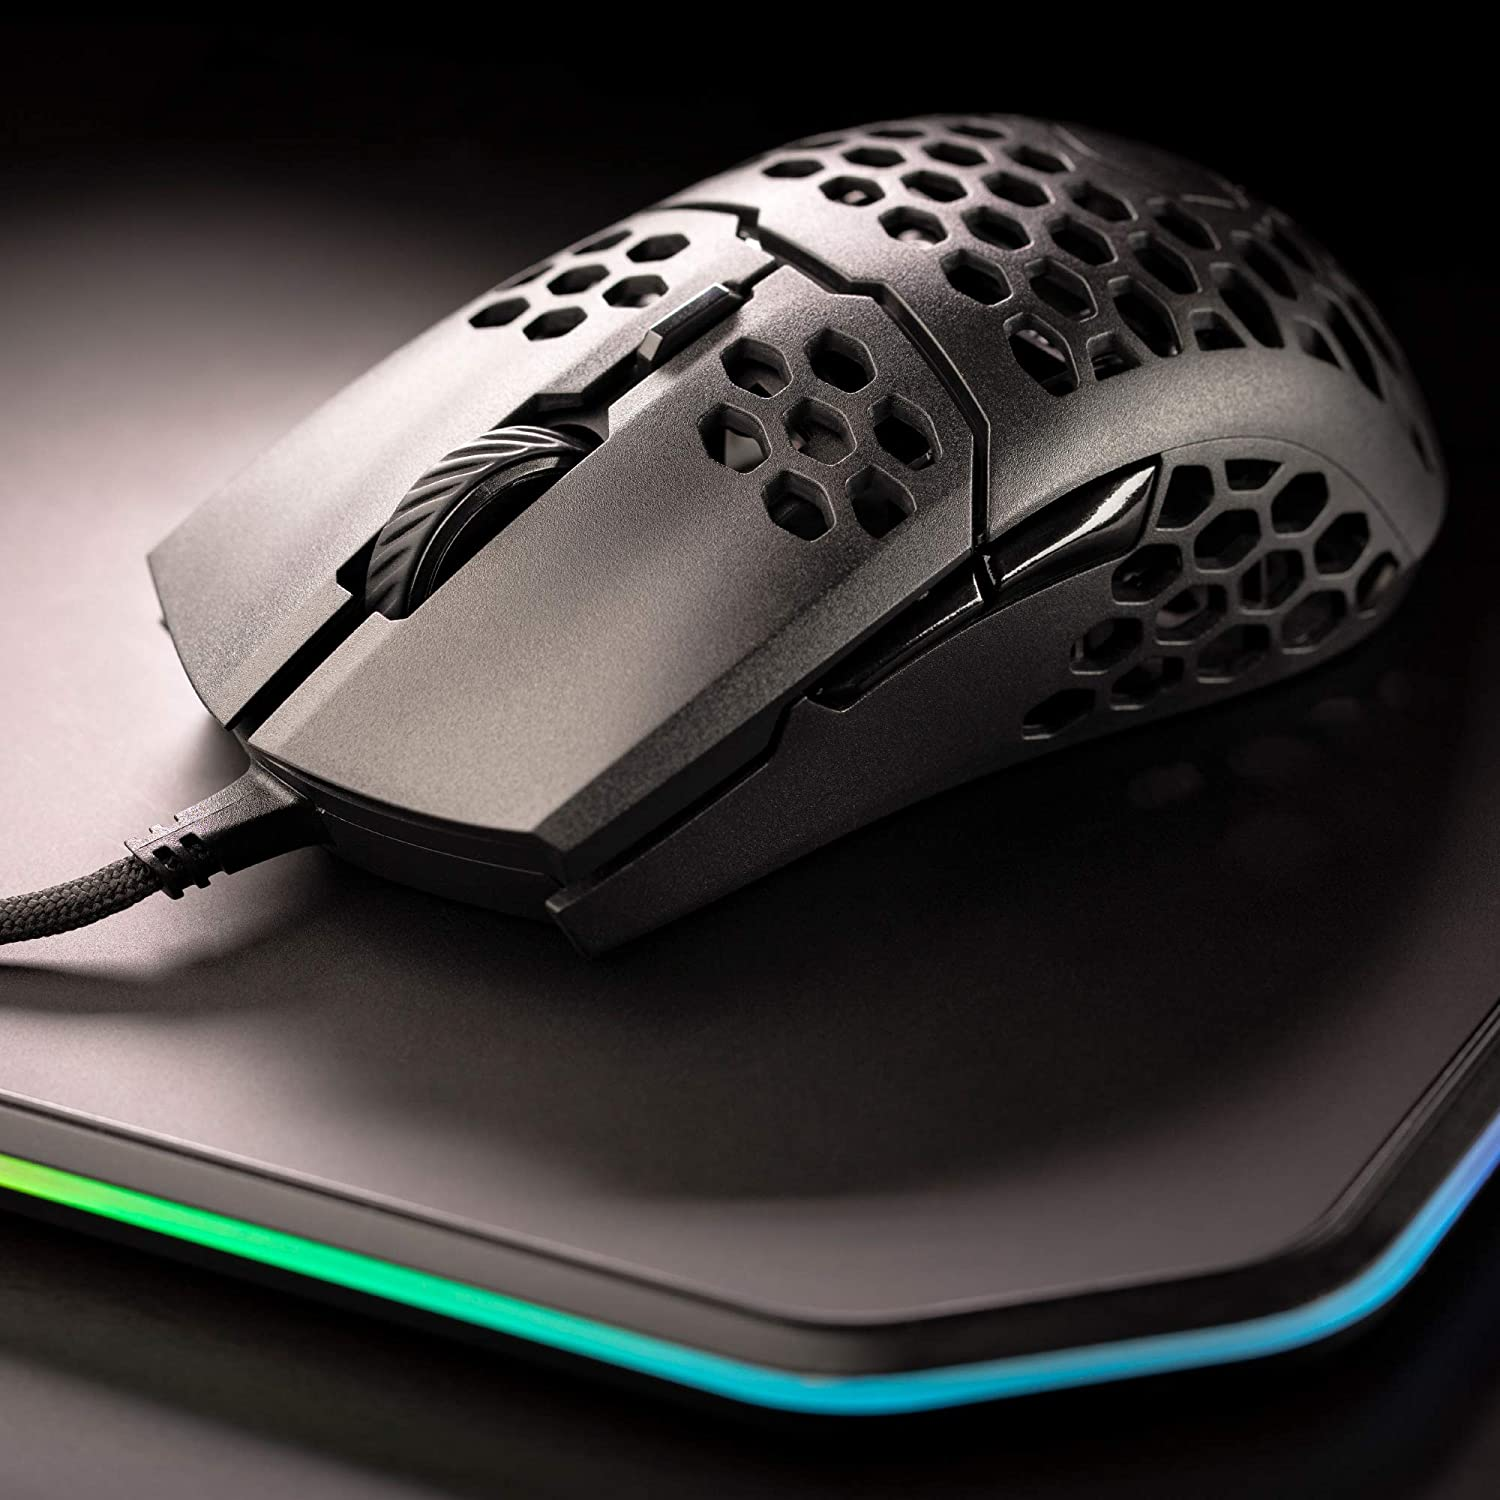 Cooler Master MM710 53G Gaming Mouse 2020